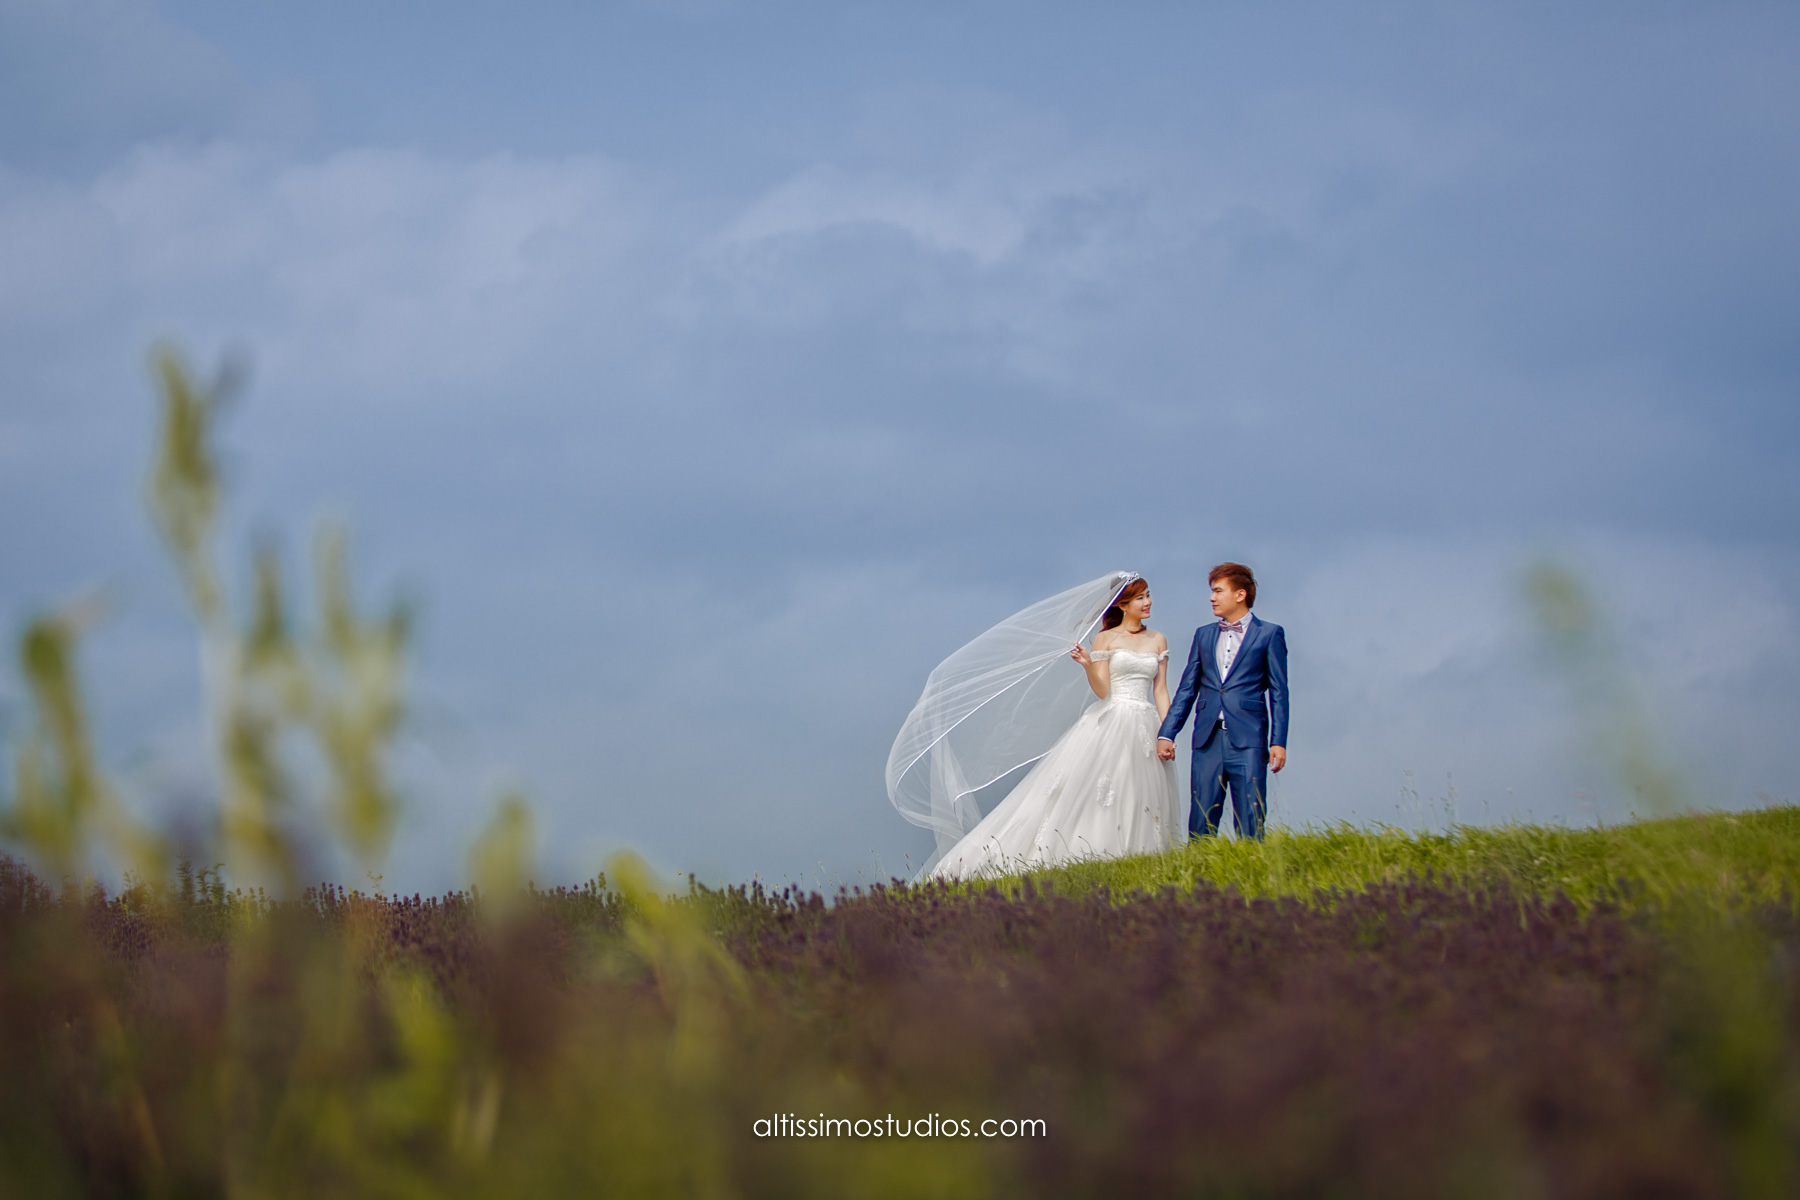 wedding photoshoot in hokkaido with beautiful sky